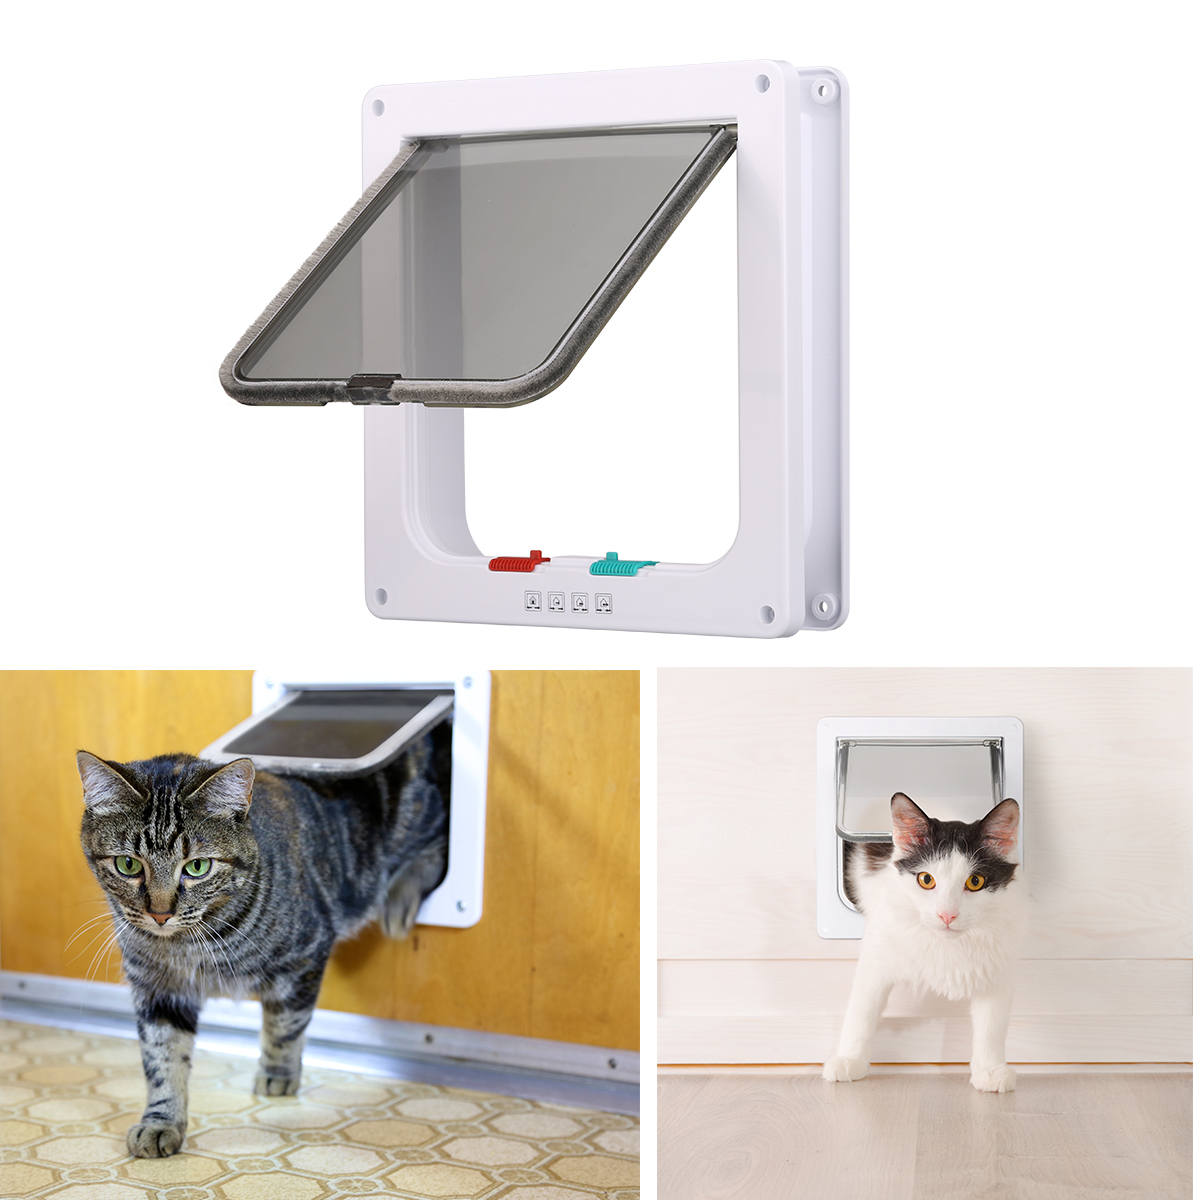 Details about 4-Way Locking Cat Door The Kitty Pass Interior Pet Dog Entrance Safe Flap Gate S  sc 1 st  eBay & 4-Way Locking Cat Door The Kitty Pass Interior Pet Dog Entrance Safe ...